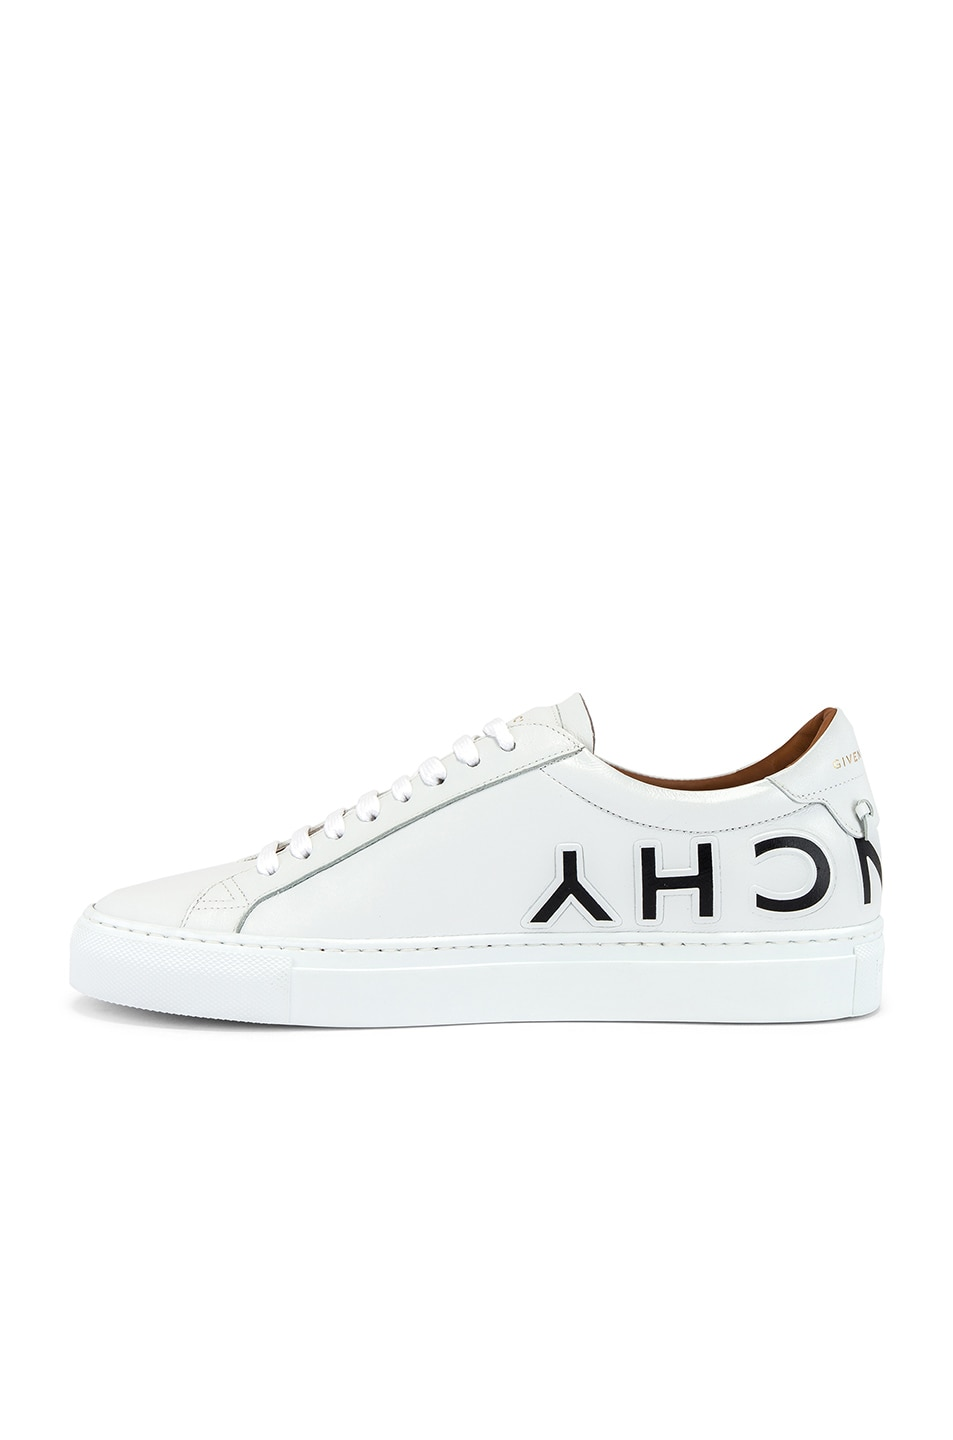 Image 5 of Givenchy Urban Street Sneaker in White & Black